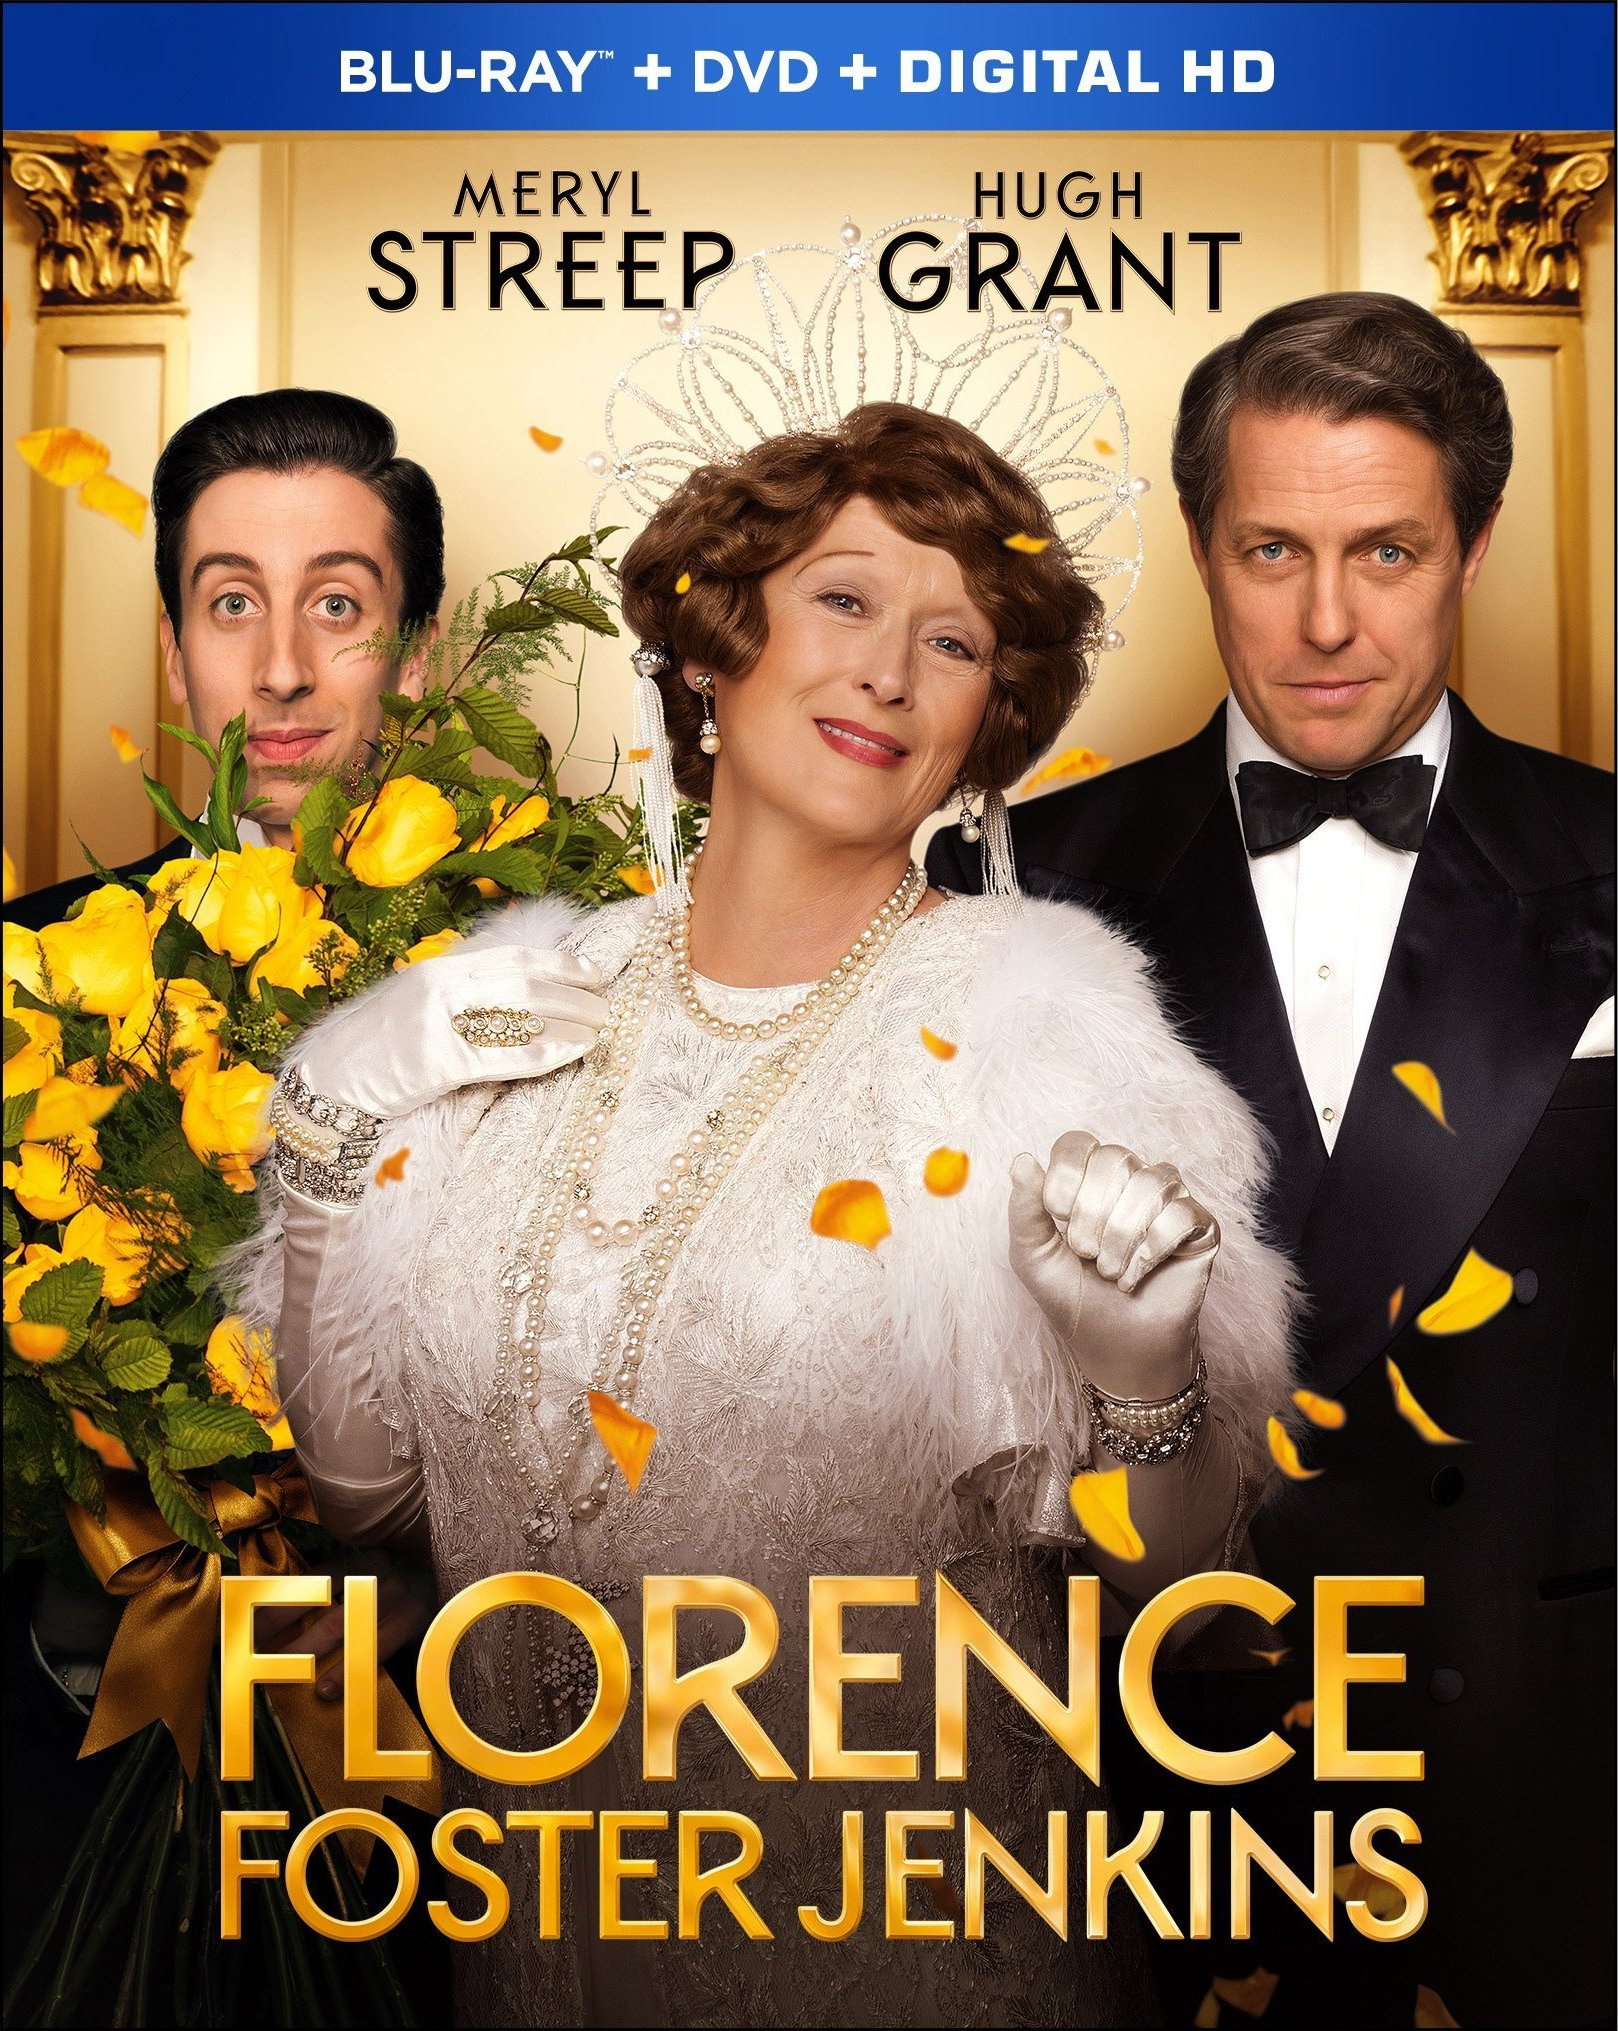 Florence Foster Jenkins Blu-ray Review